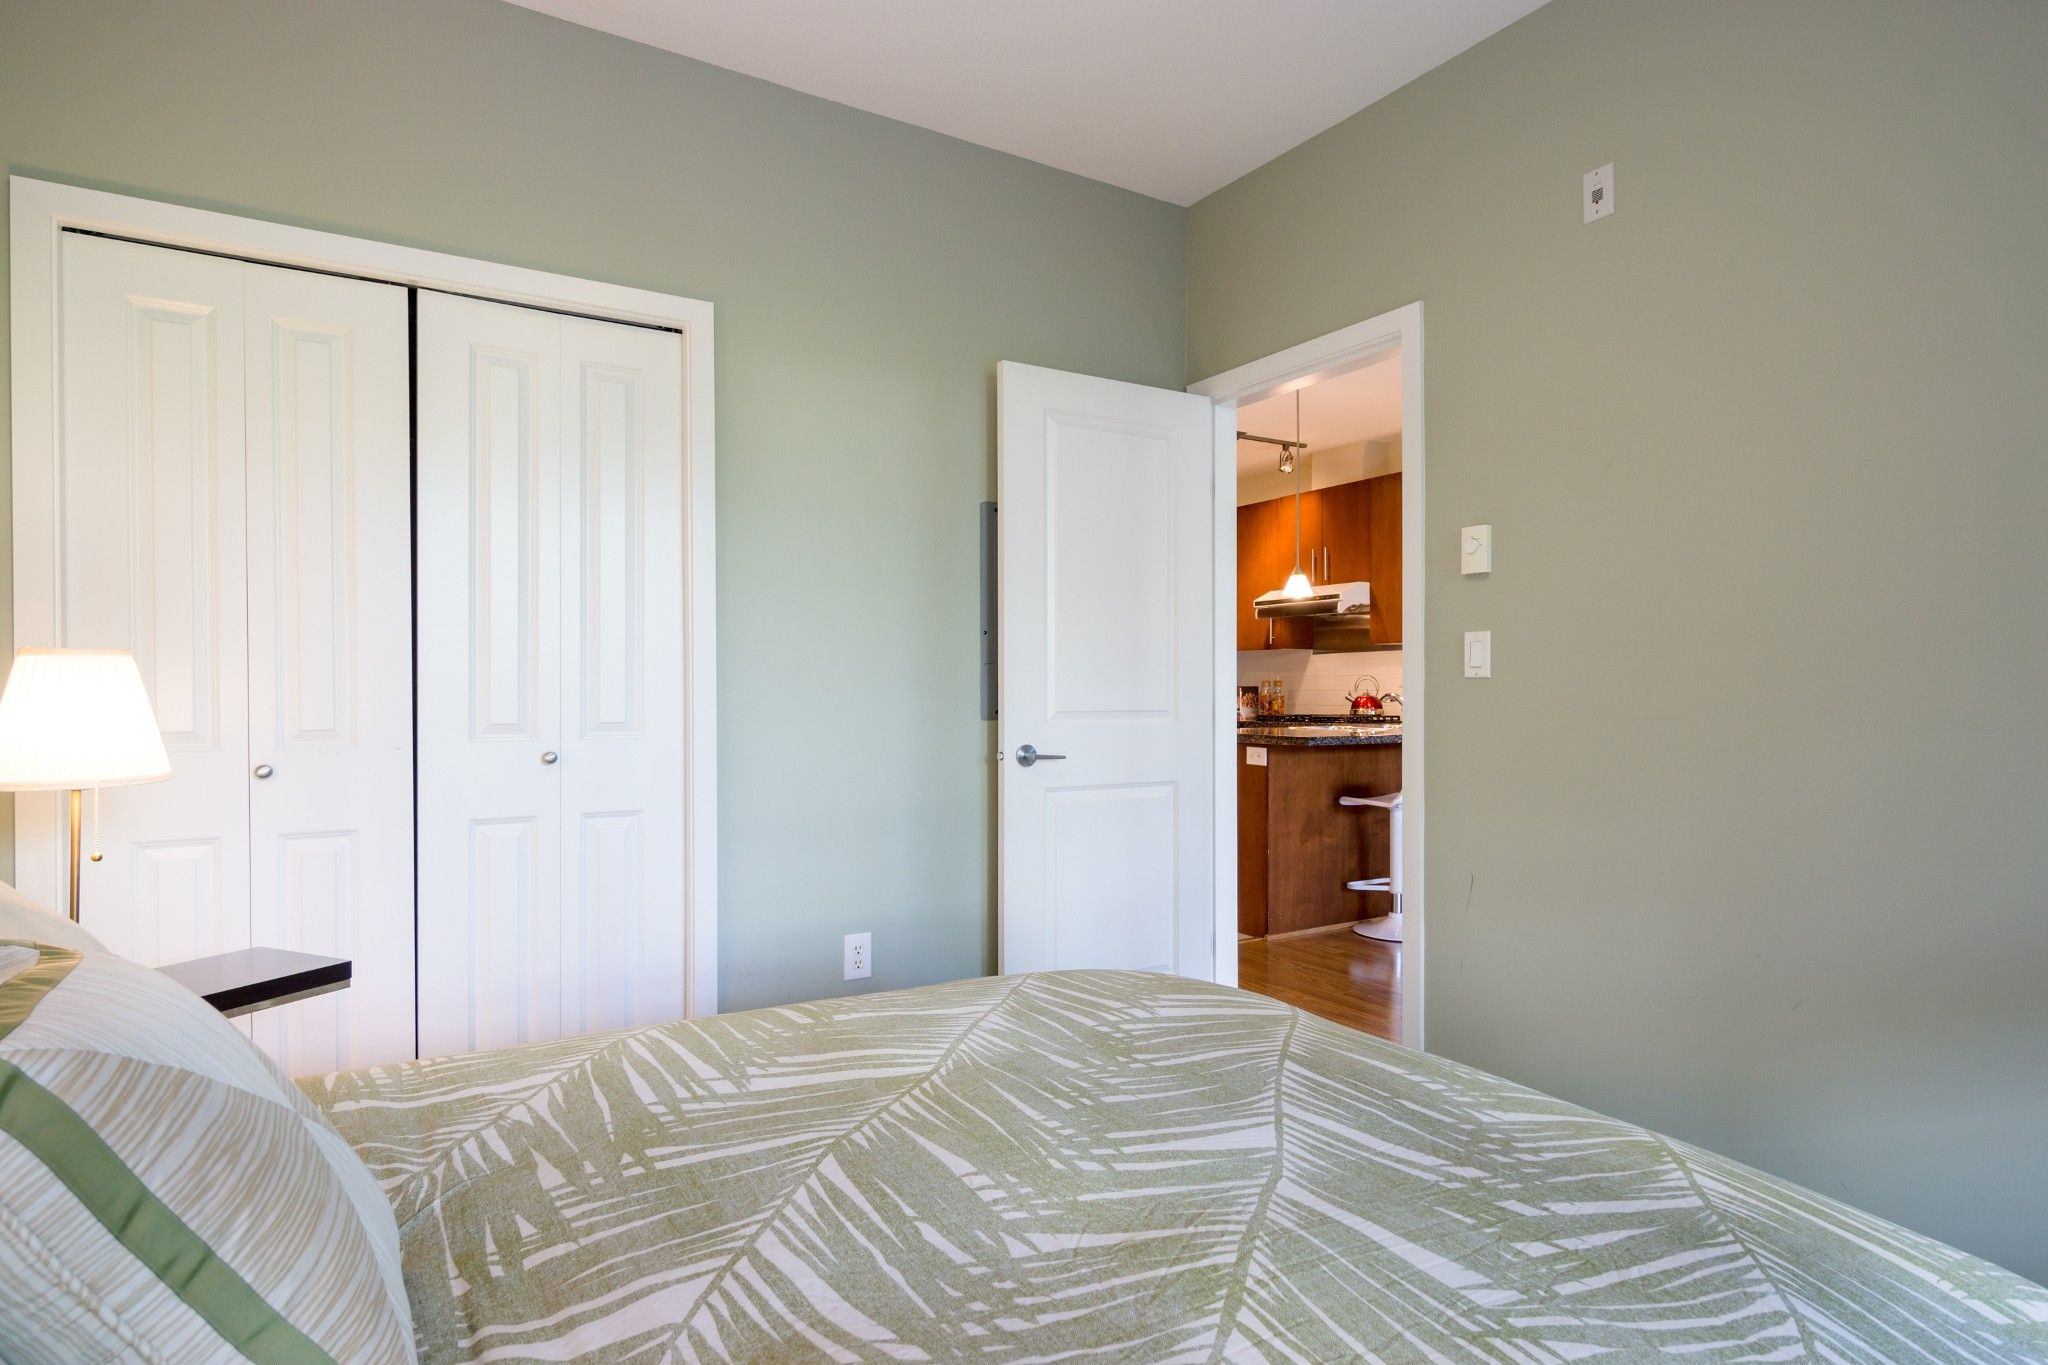 Photo 23: Photos: 208 3551 FOSTER Avenue in Vancouver: Collingwood VE Condo for sale (Vancouver East)  : MLS®# R2291555